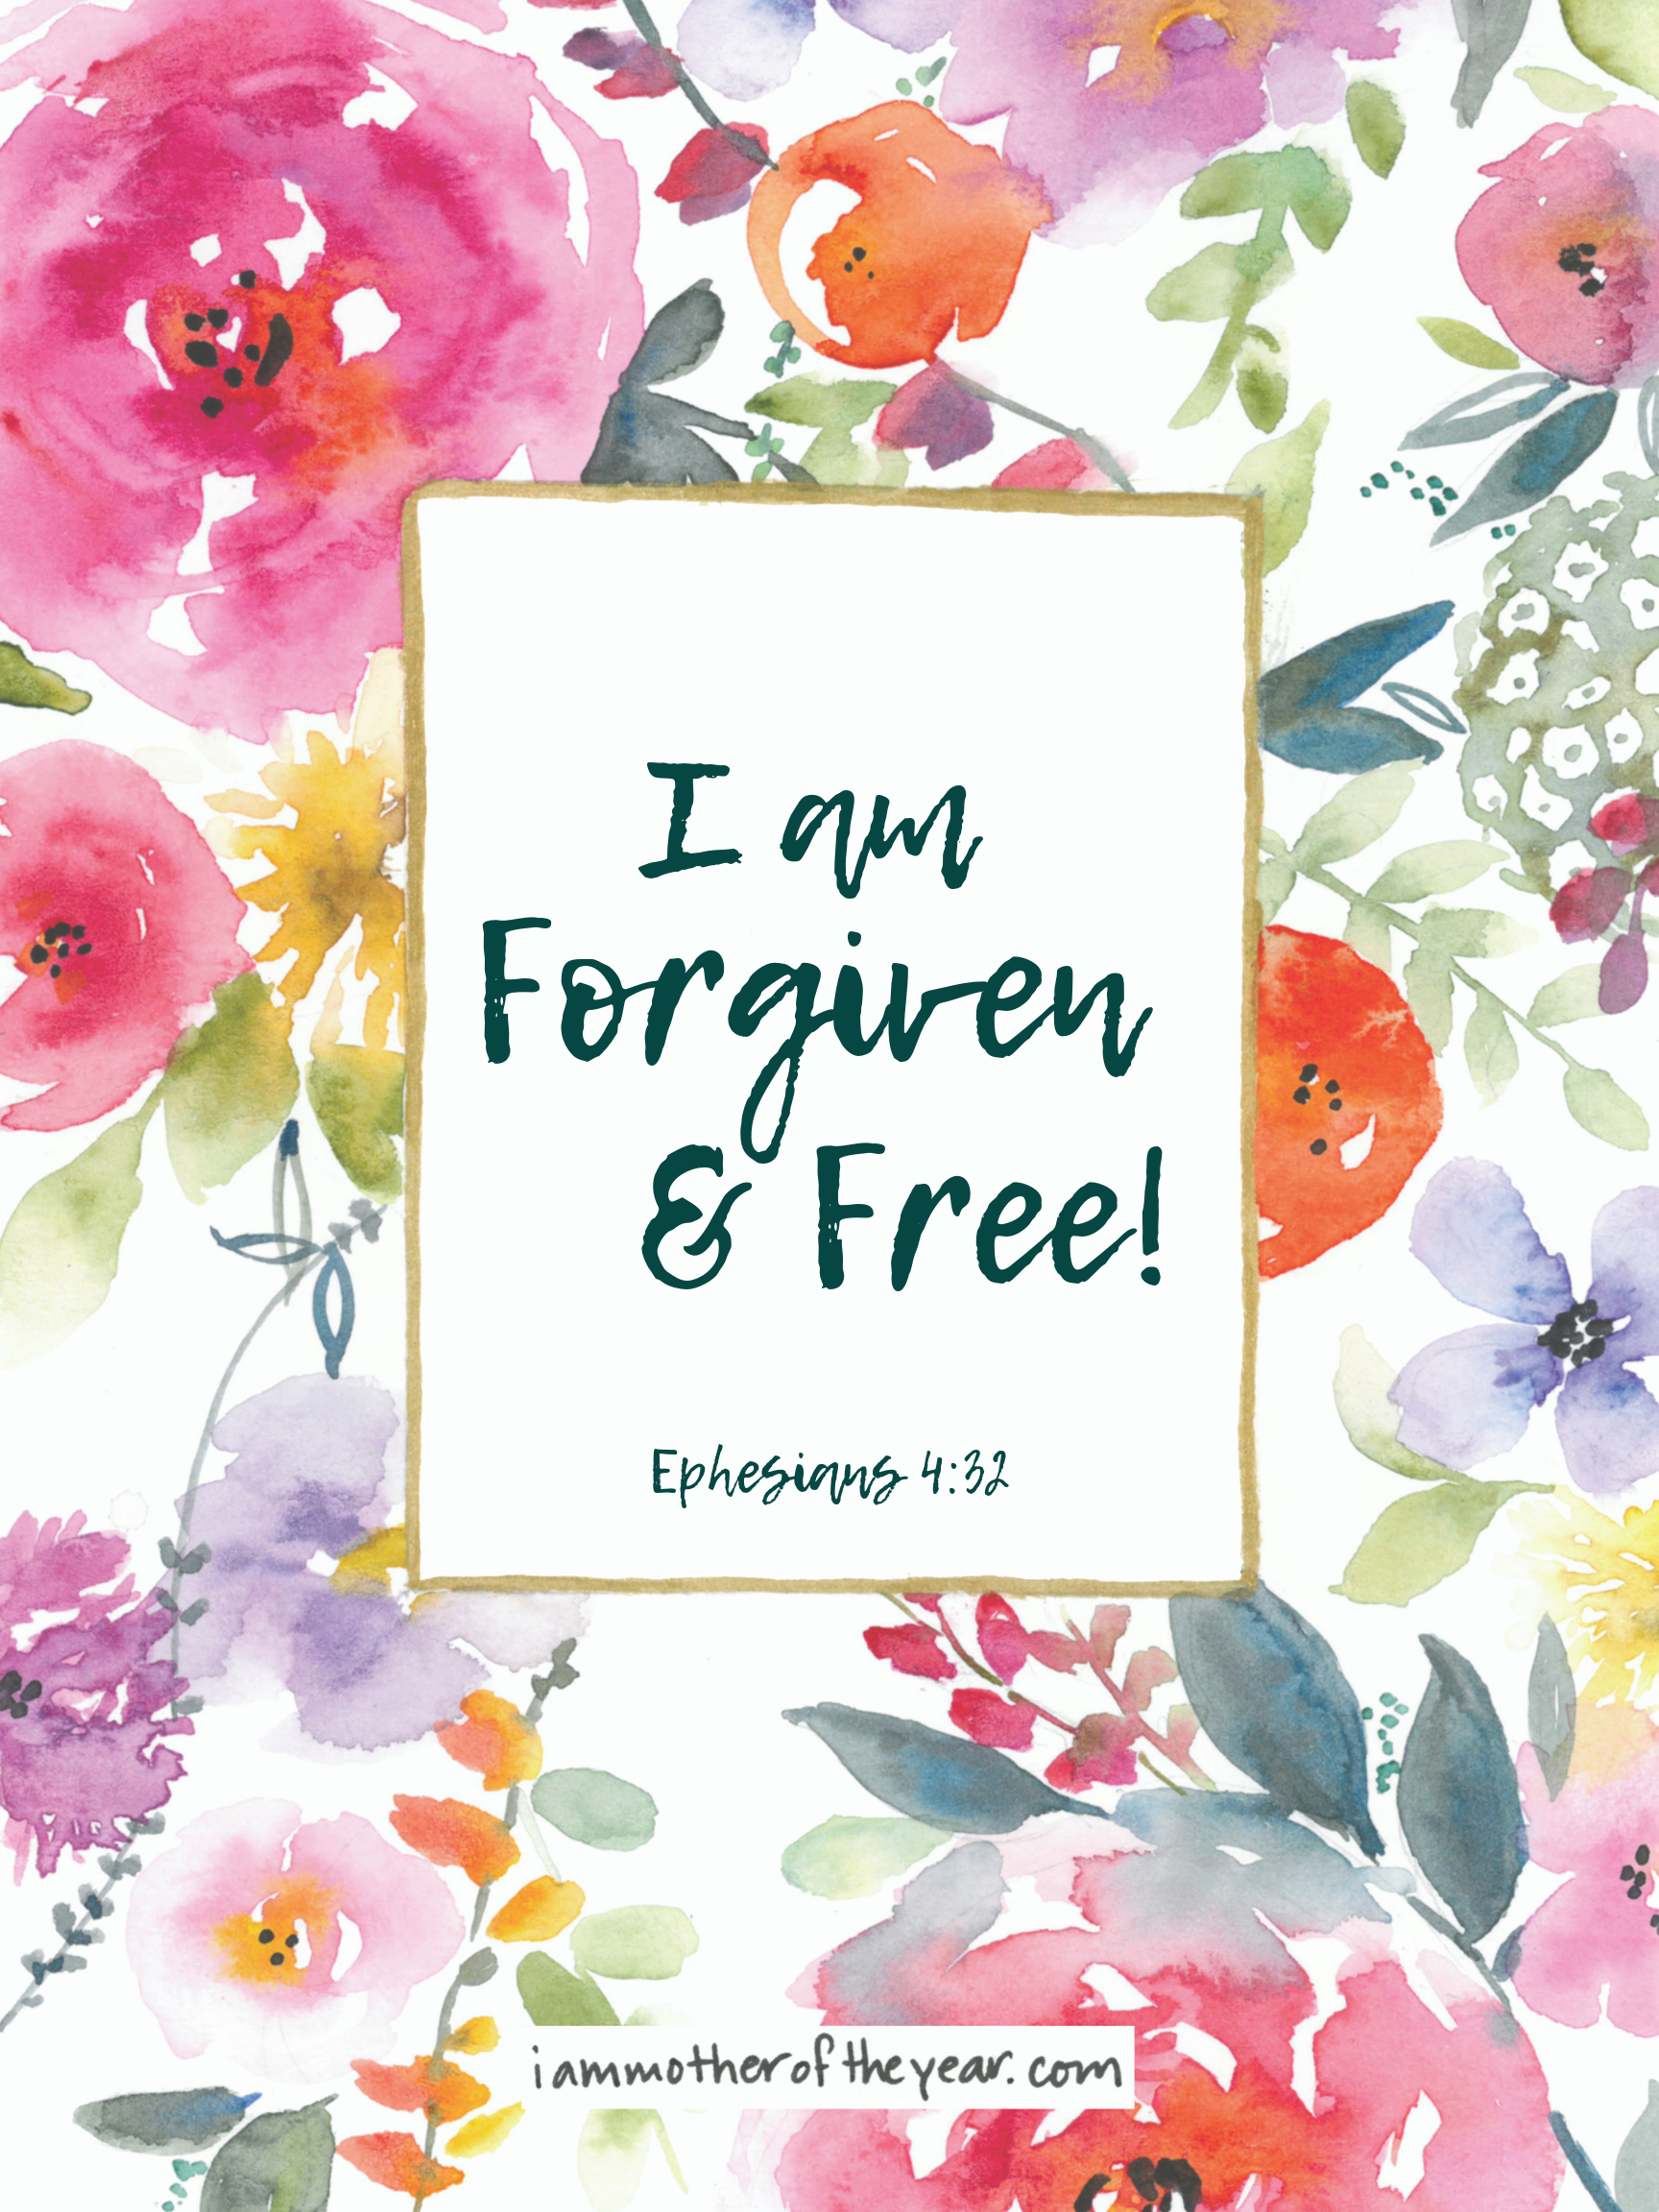 I am forgiven and free!.png